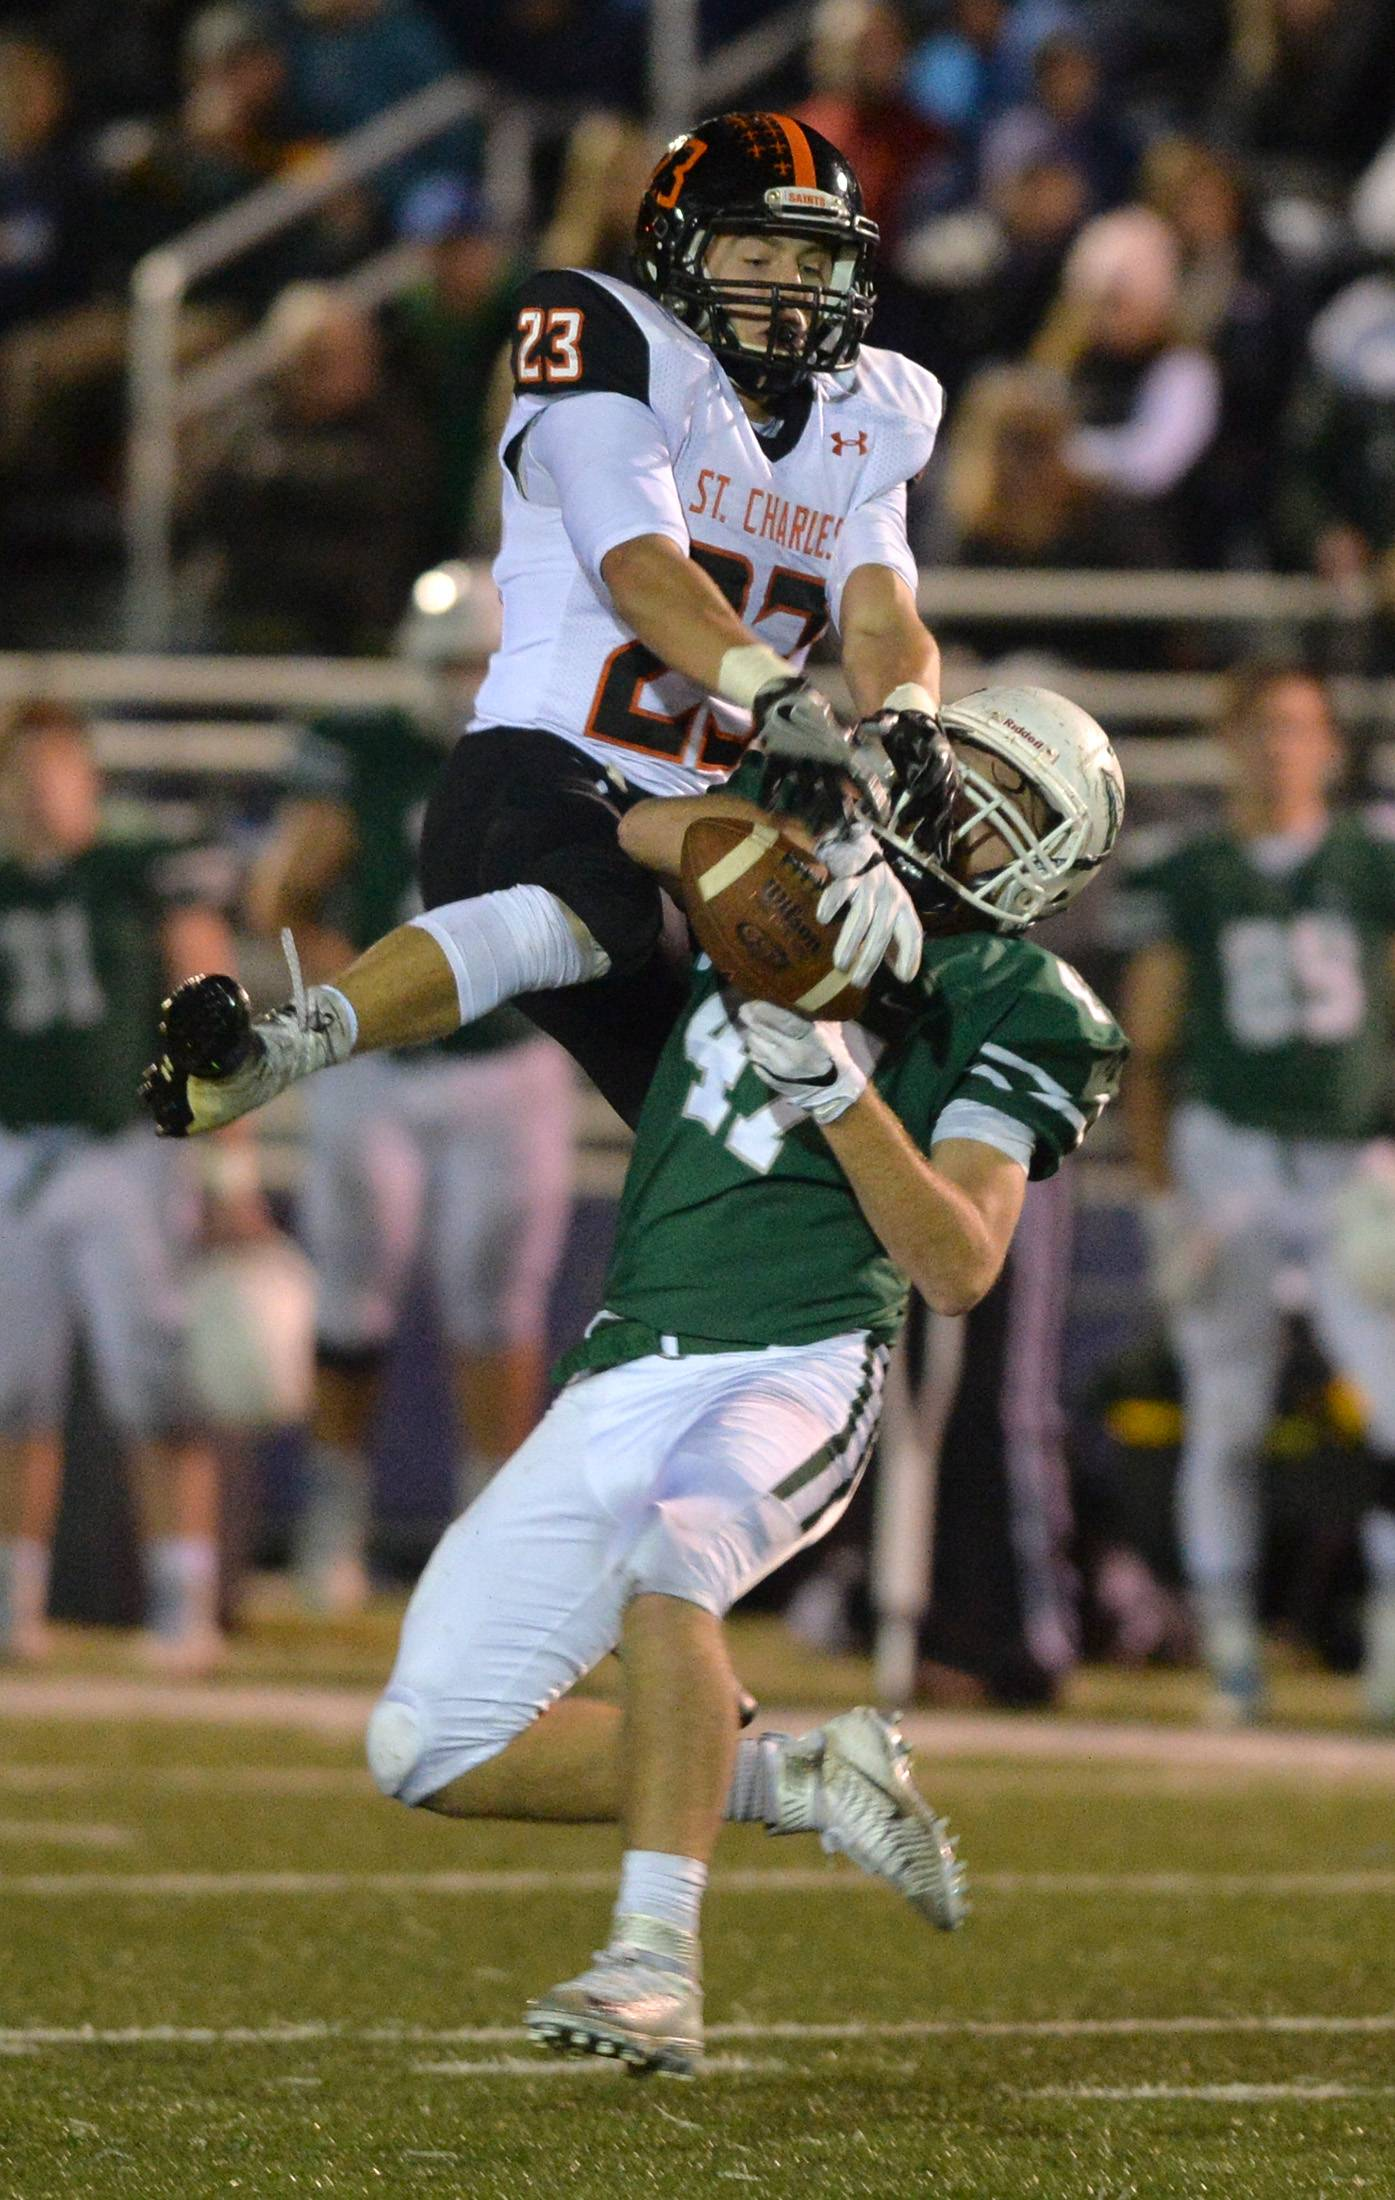 New Trier linebacker Max Bryla intercepts a pass intended for St. Charles East back Sebastian Grohe in the third quarter of their IHSA Class 8A playoff game Friday in Northfield.